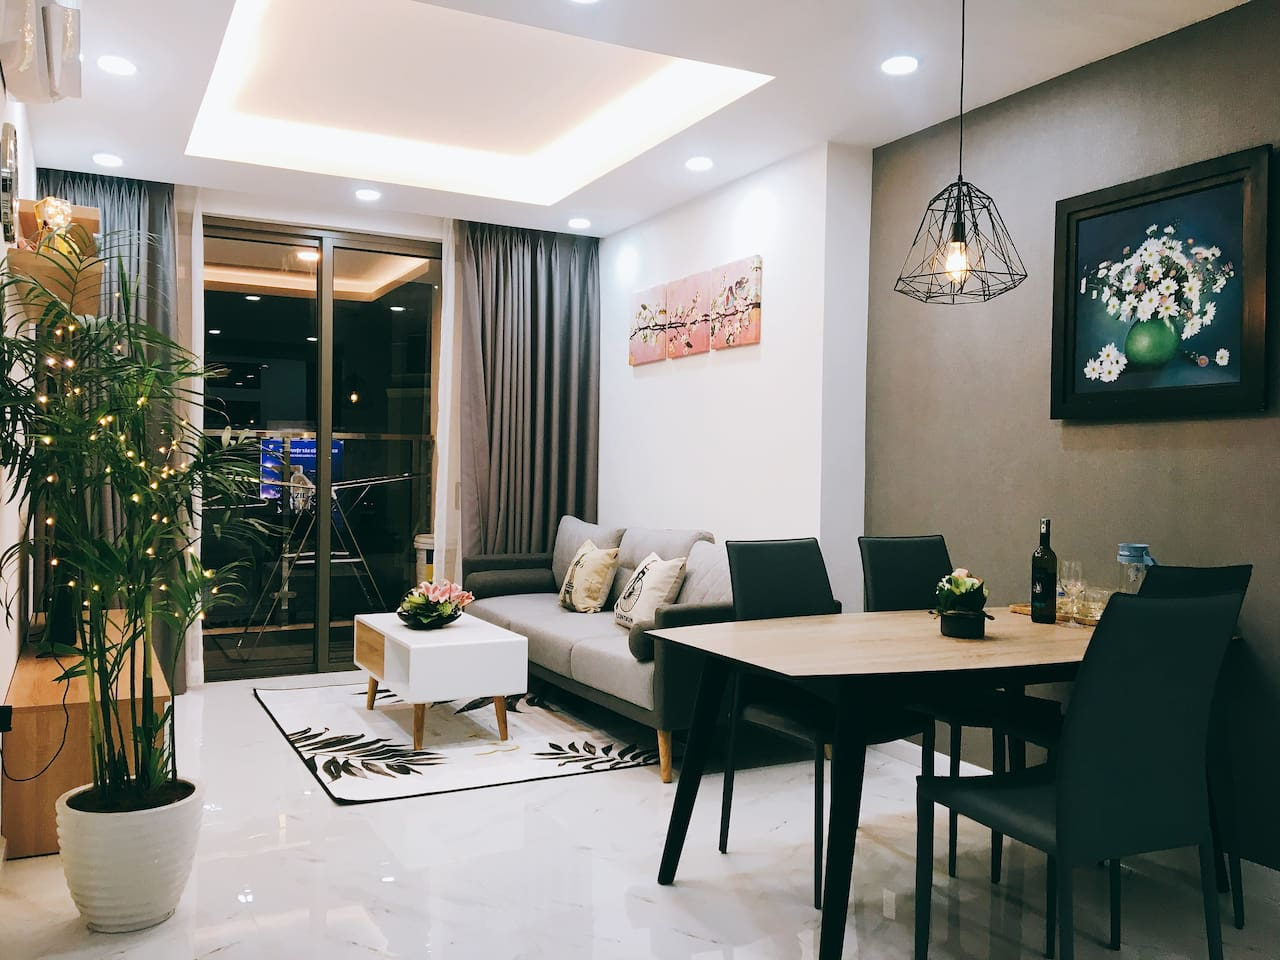 Stylish & cozy fully furnished apartment in between Tan Son Nhat International Airport and the busy center District 1. 1 bottle of red wine as a gift for 1-month & above rental.